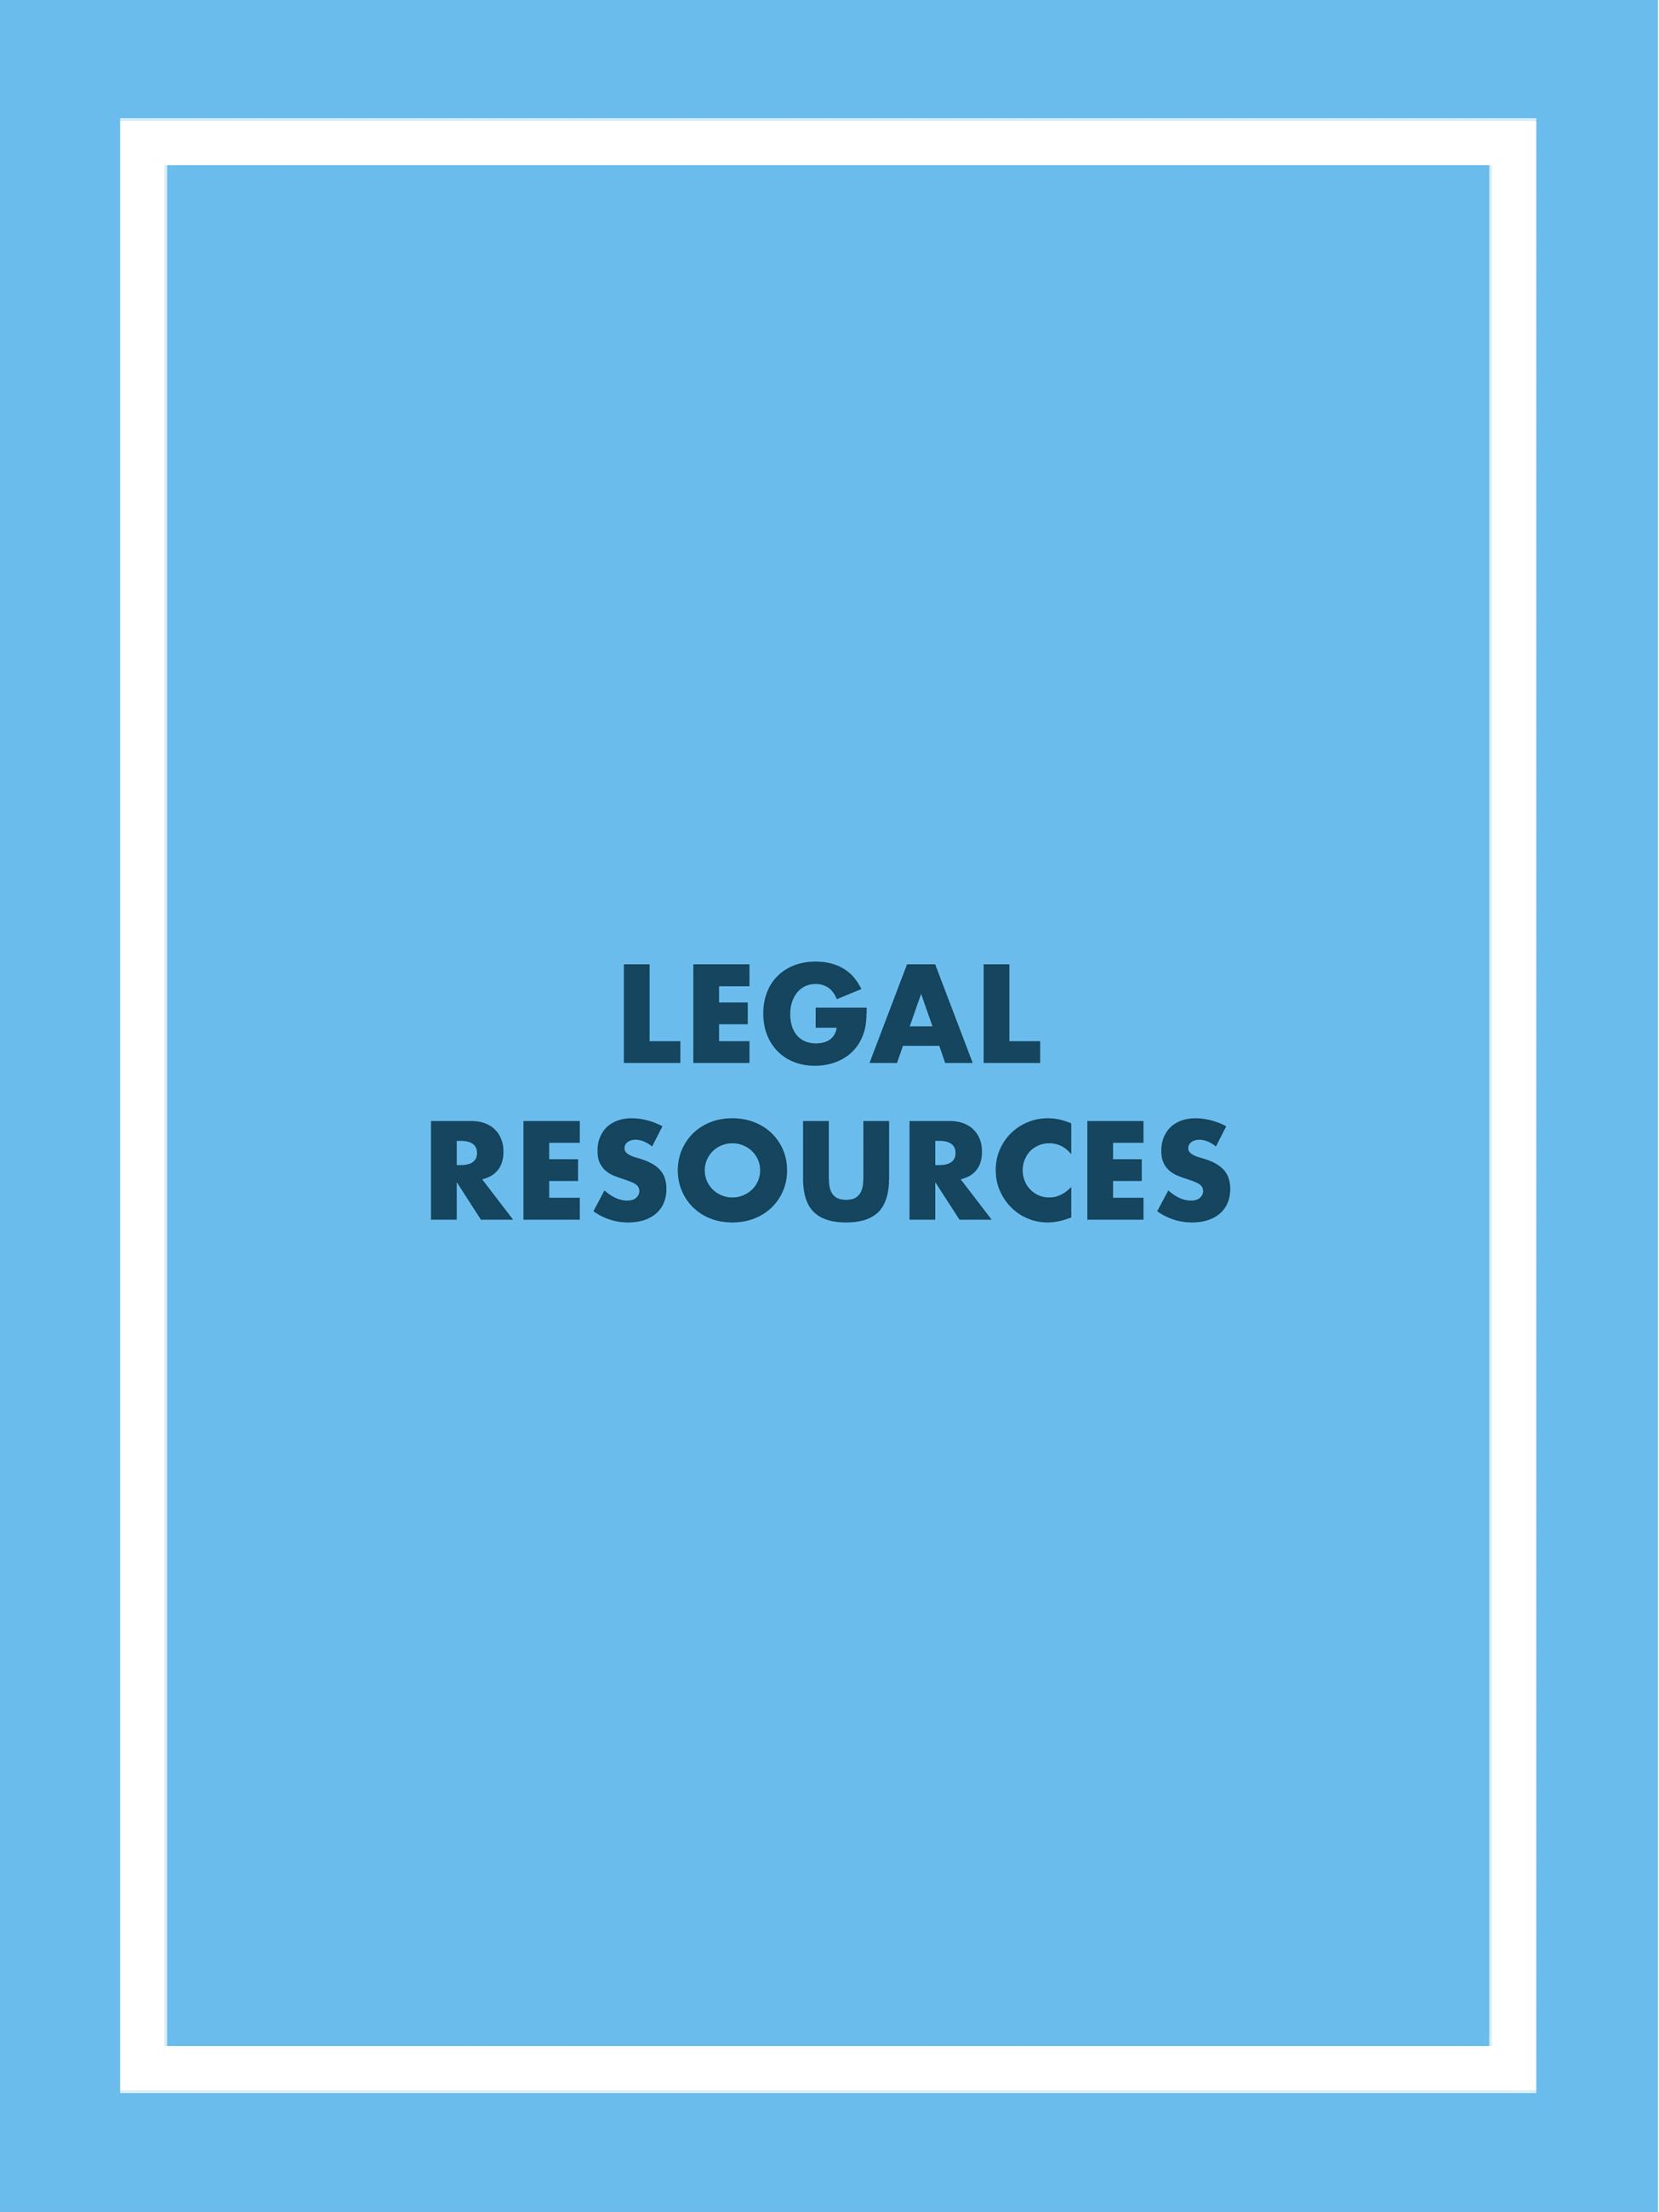 Legal Resource-01